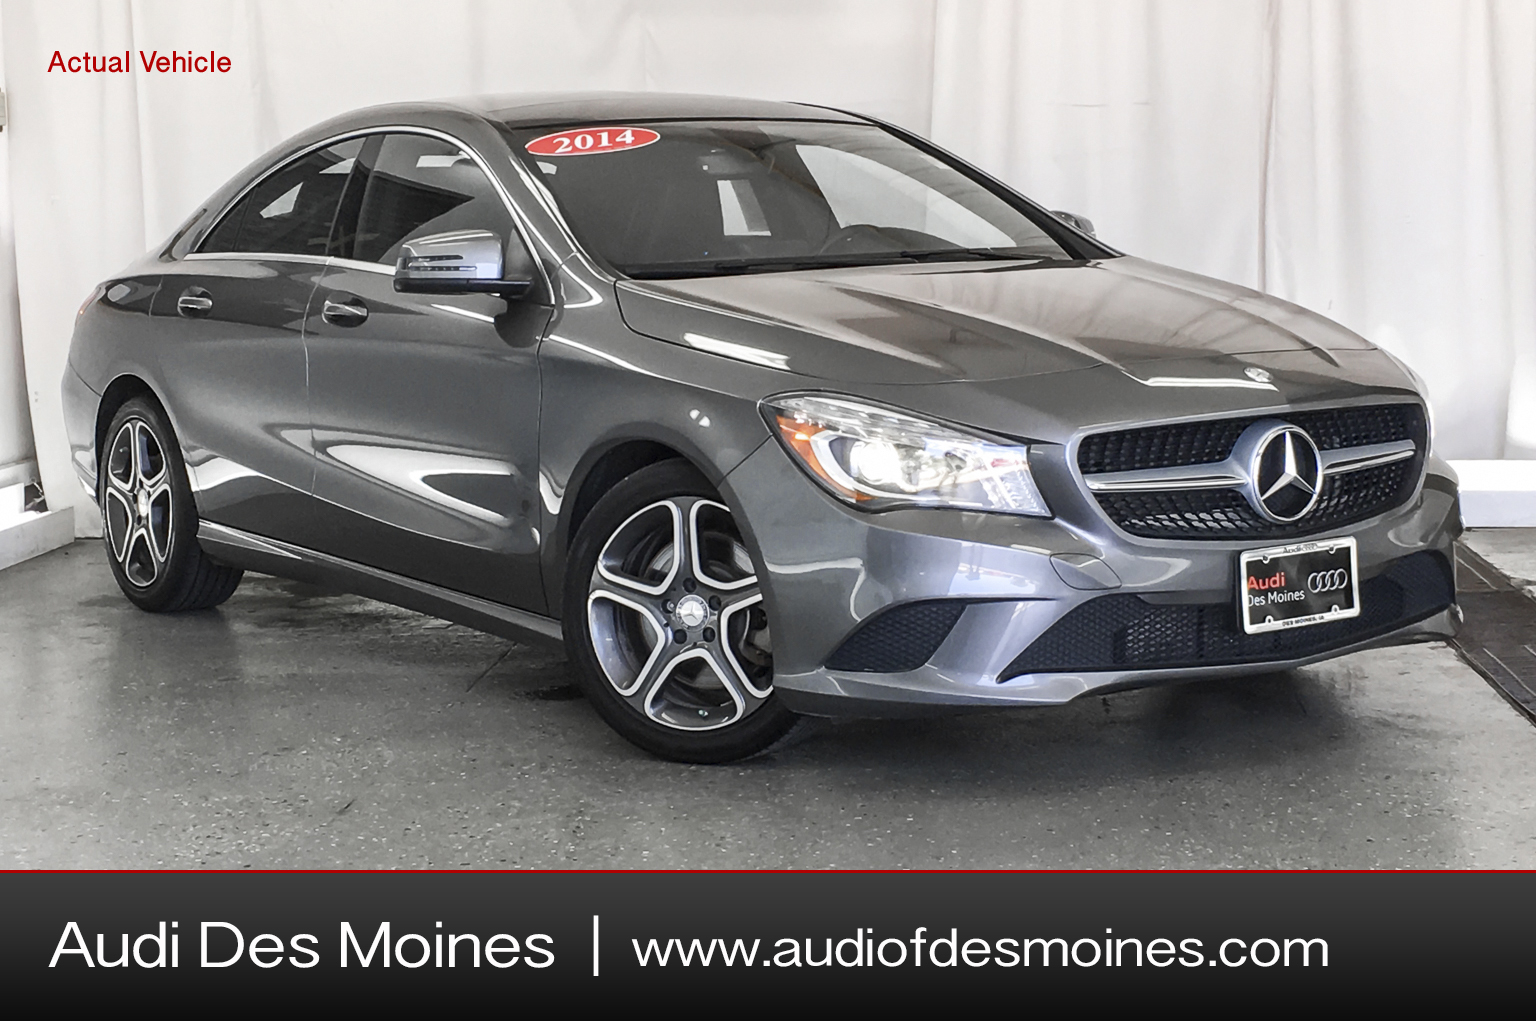 Pre-Owned 2014 Mercedes-Benz Cla 250 4DR SDN CLA250 FWD